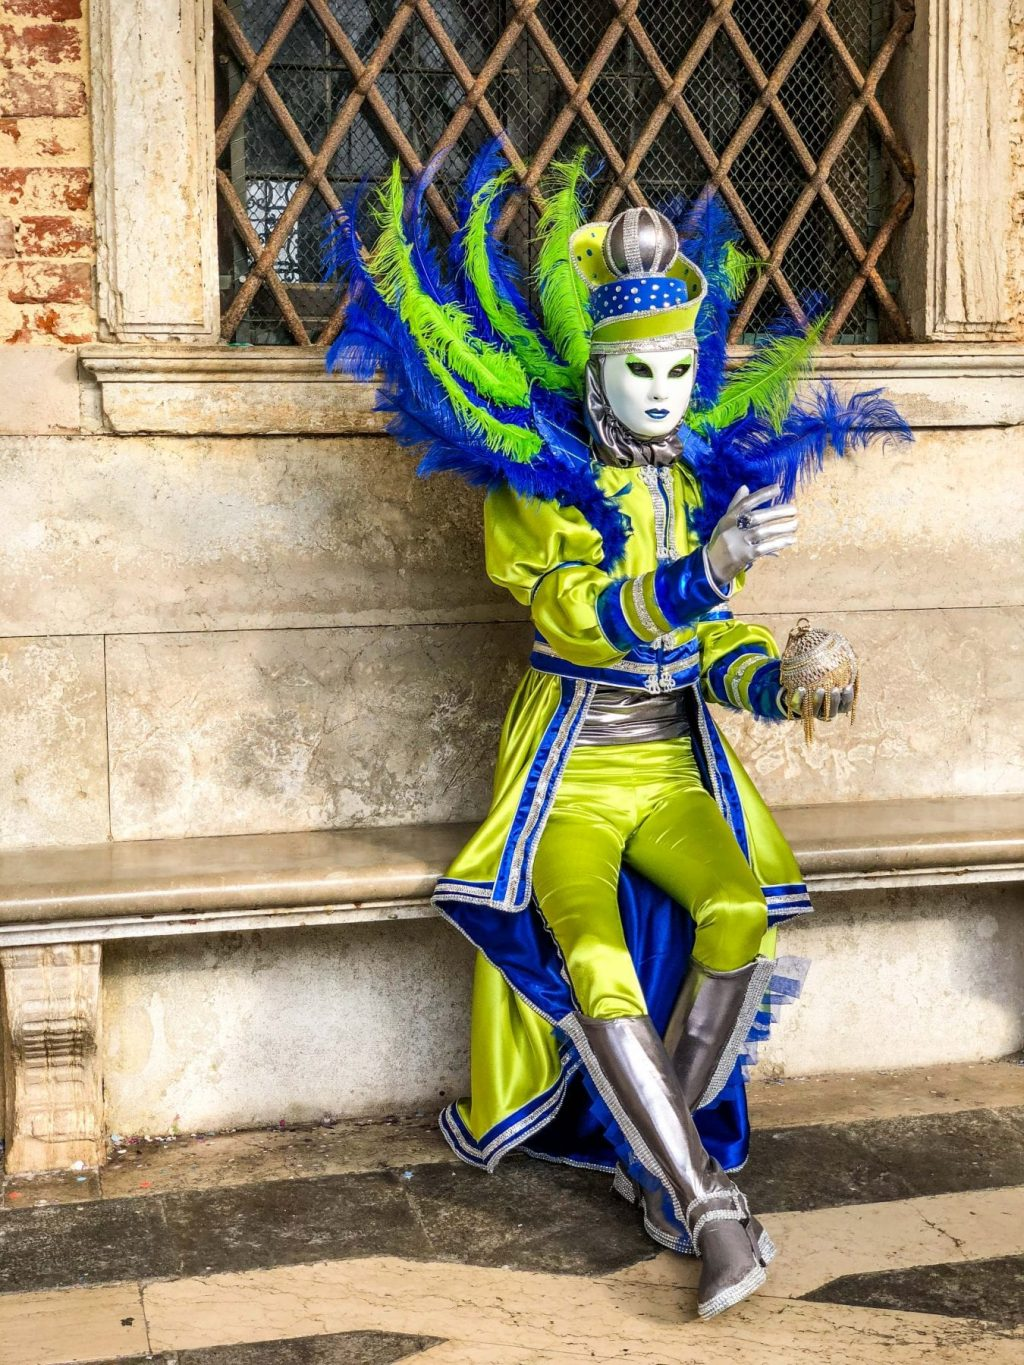 Carnival Venice Italy, Best 42 Masks & Costumes From The  Original Carnaval in Venice, Italy aka. Venezia, Italia